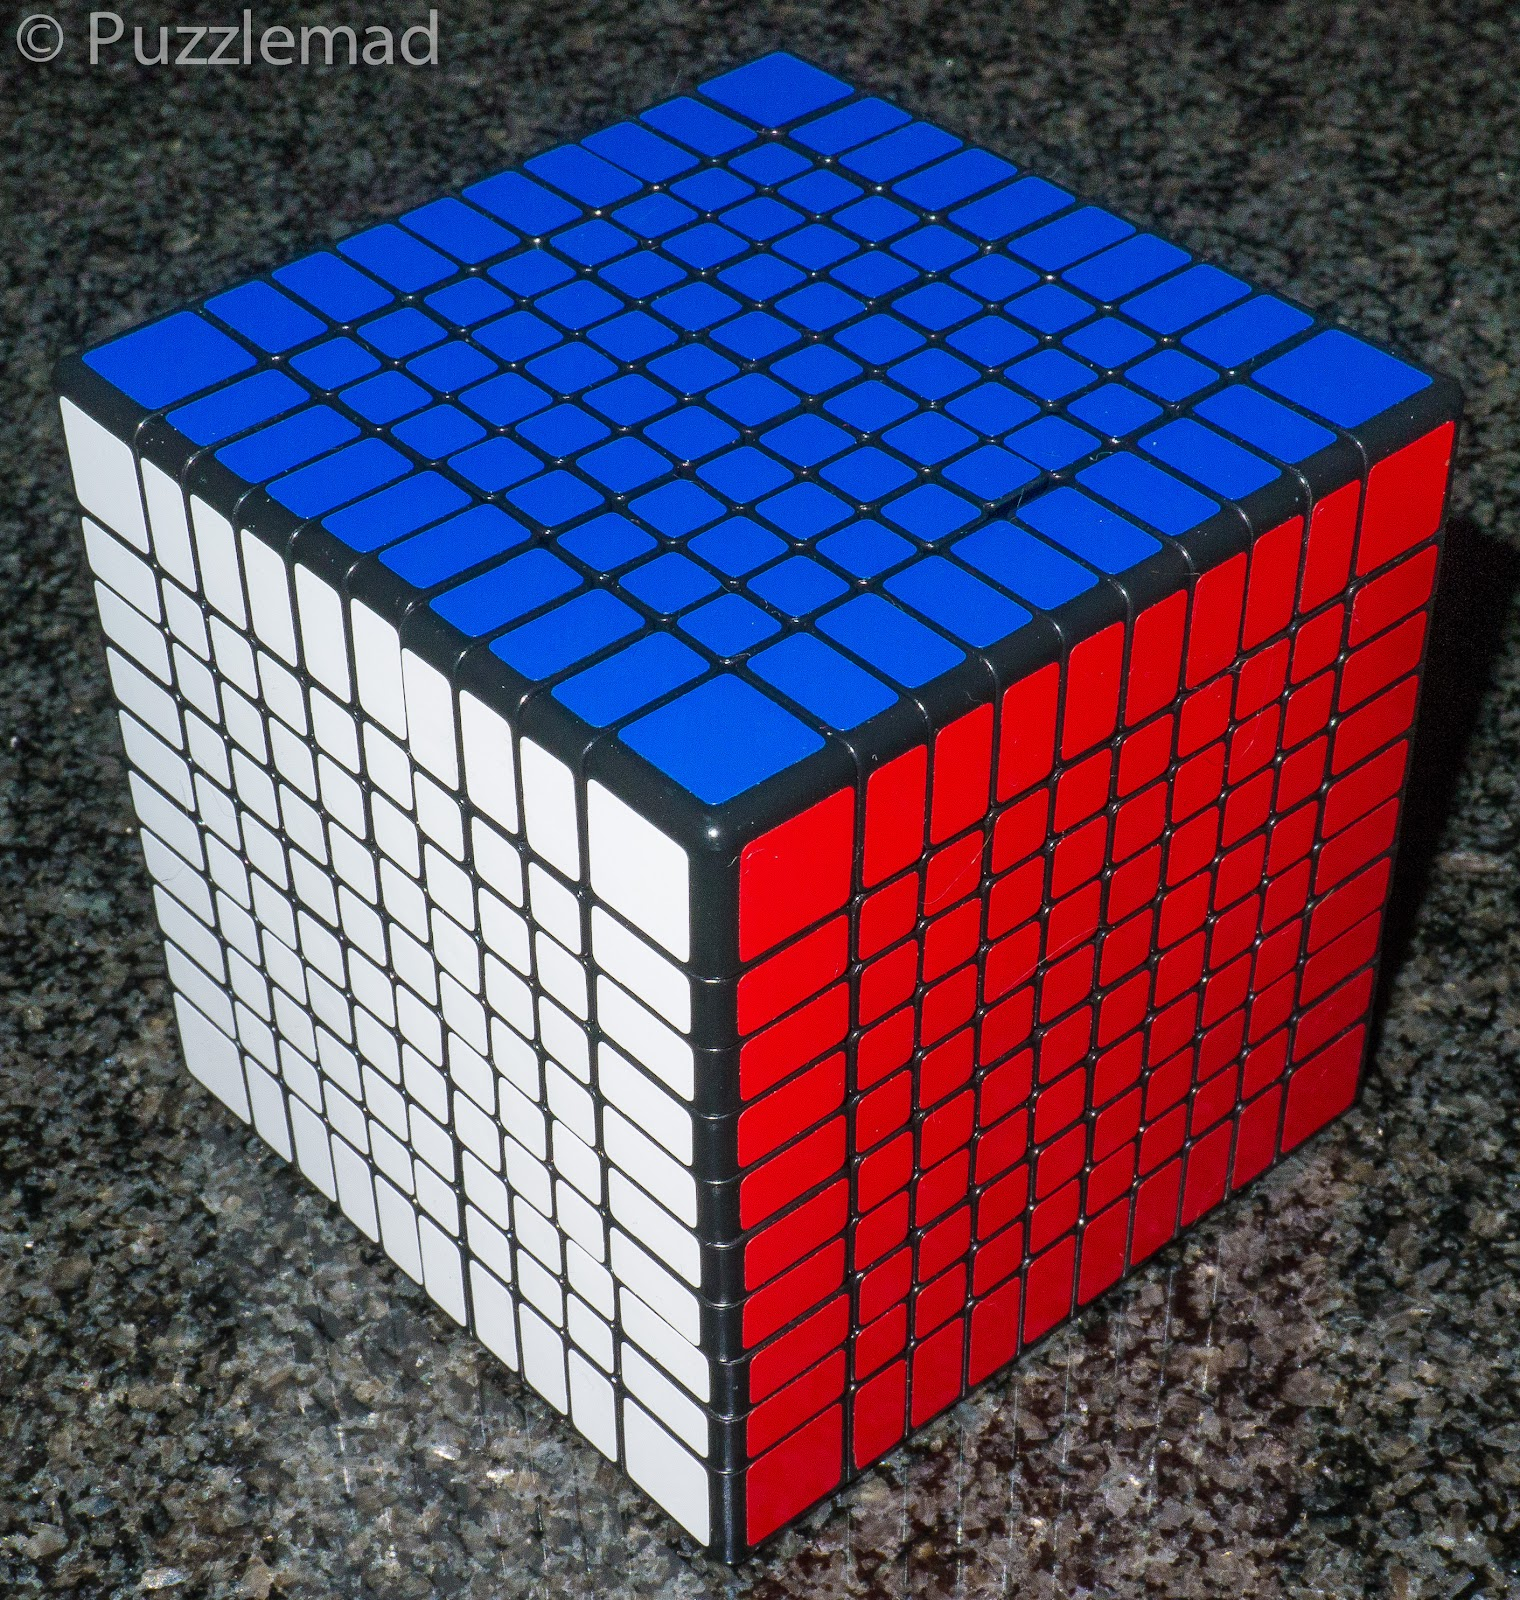 PuzzleMad: Parity is to be understood not feared!